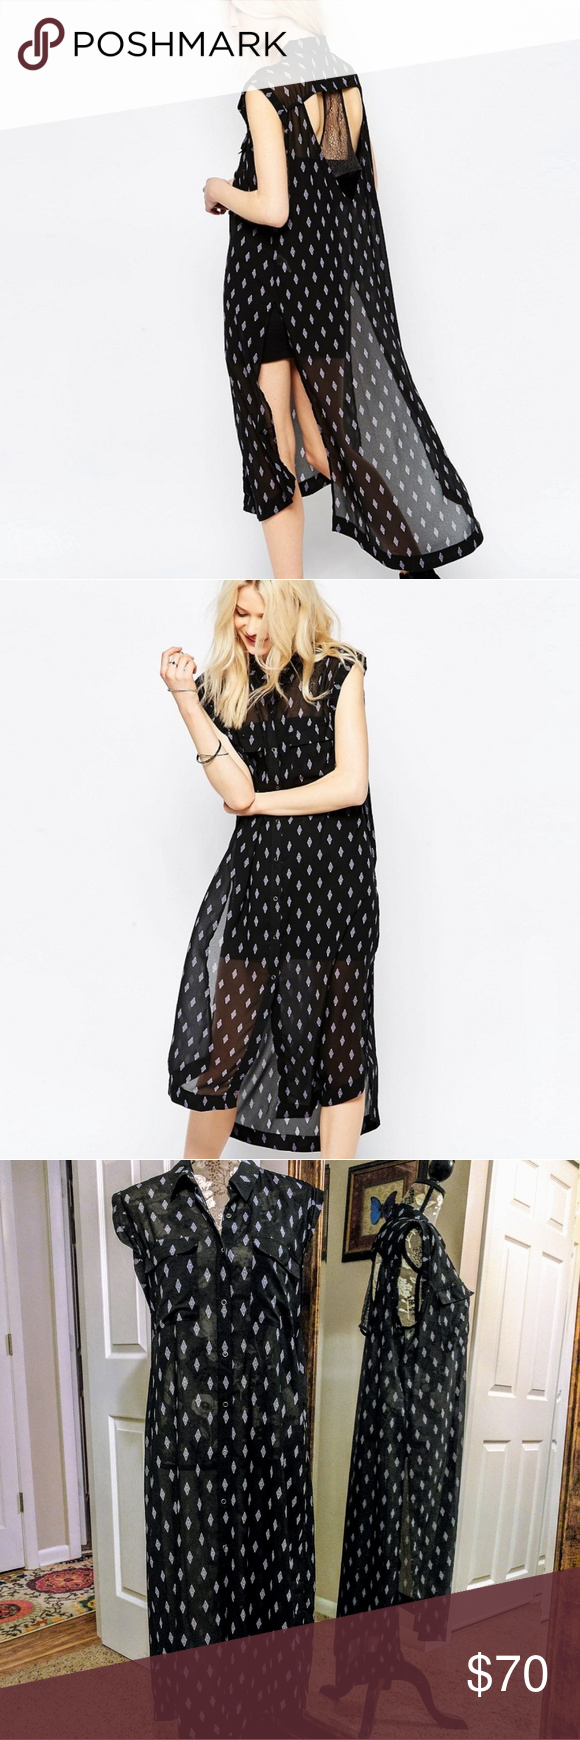 Free People Mercer Printed Shirt Dress Sheer maxi button down sleeveless shirtdress. Open crochet detail on back. Snap button closure. Side slits with slight high-low hem. There is some pulled thread at the bottom of the skirt in back (shown in last picture) Free People Dresses Maxi